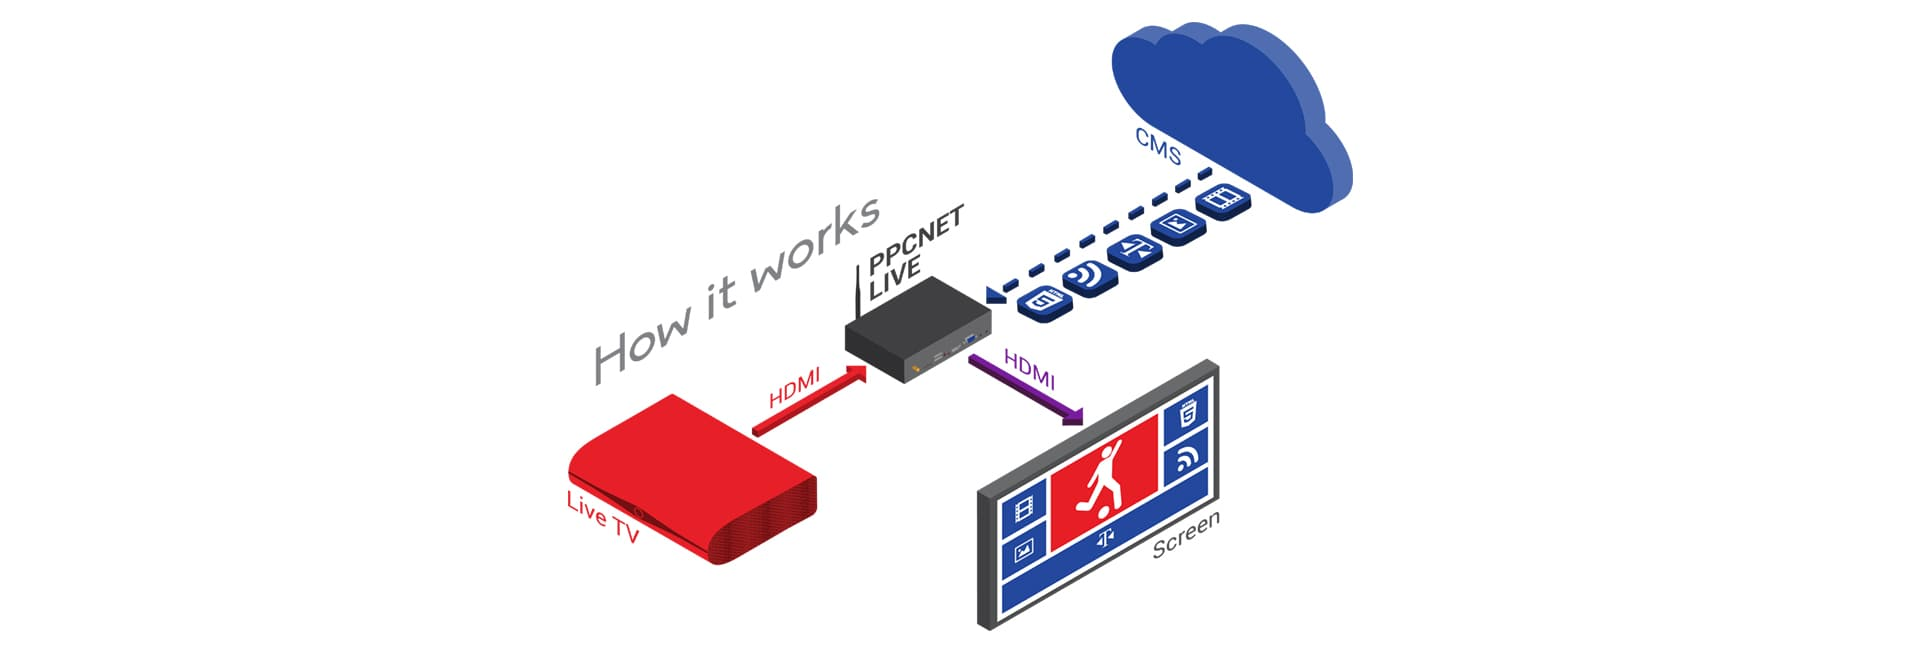 Digital Signage Multimedia Players with Software